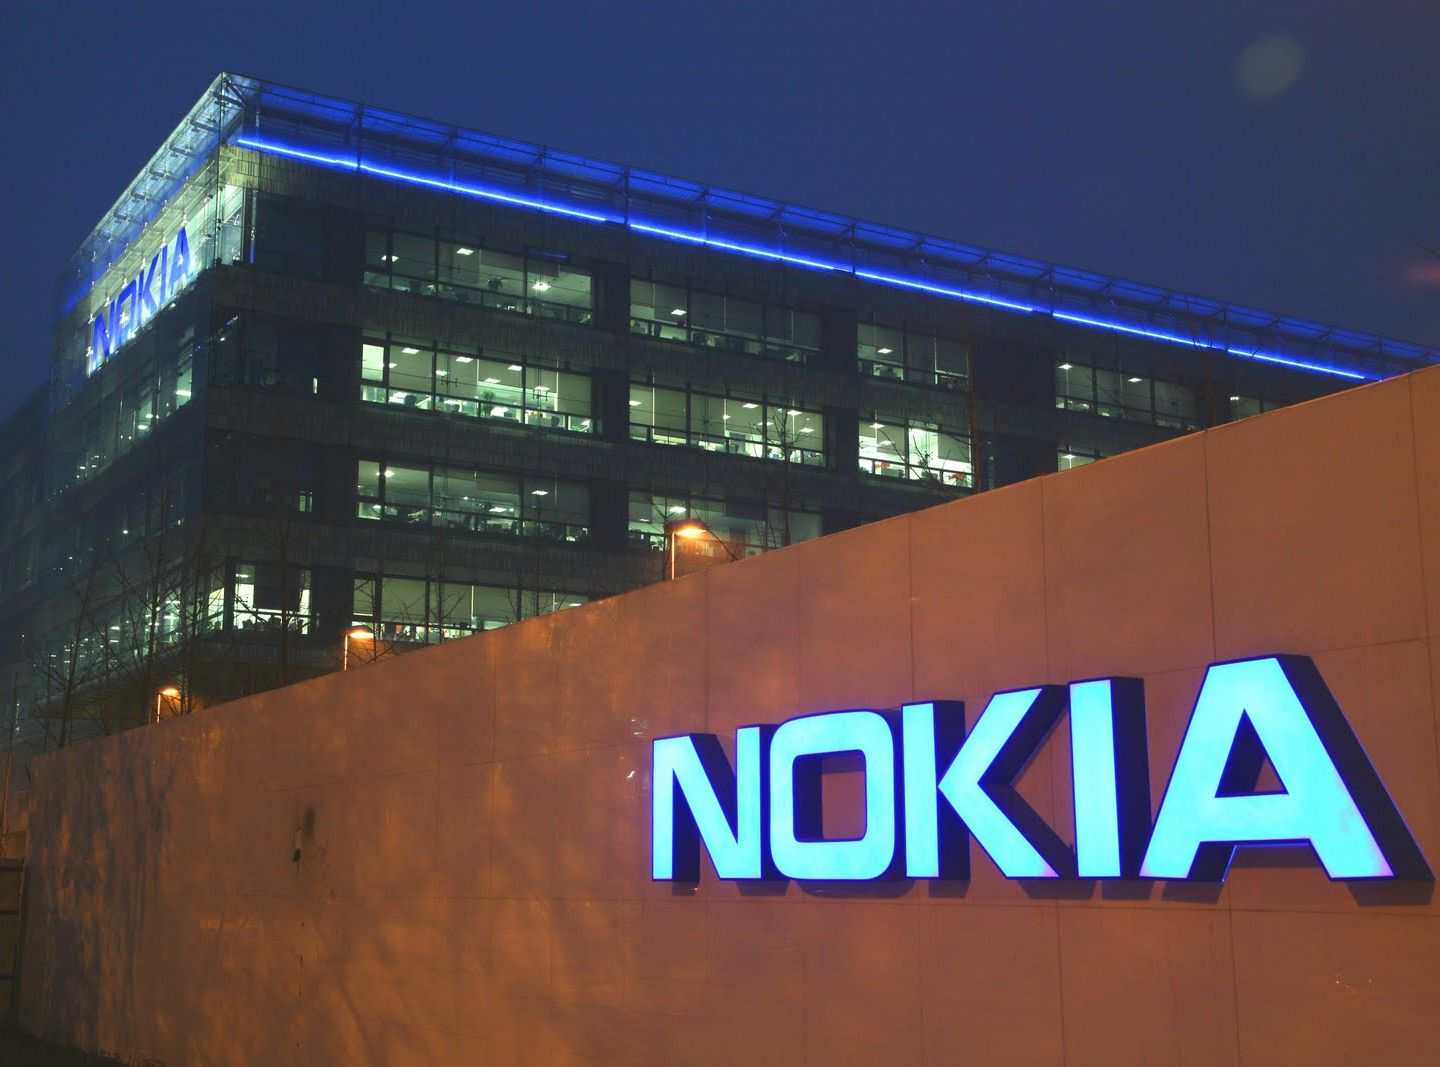 Nokia Expected to Sell Around 10.5 Million Phone Units in Its First Year